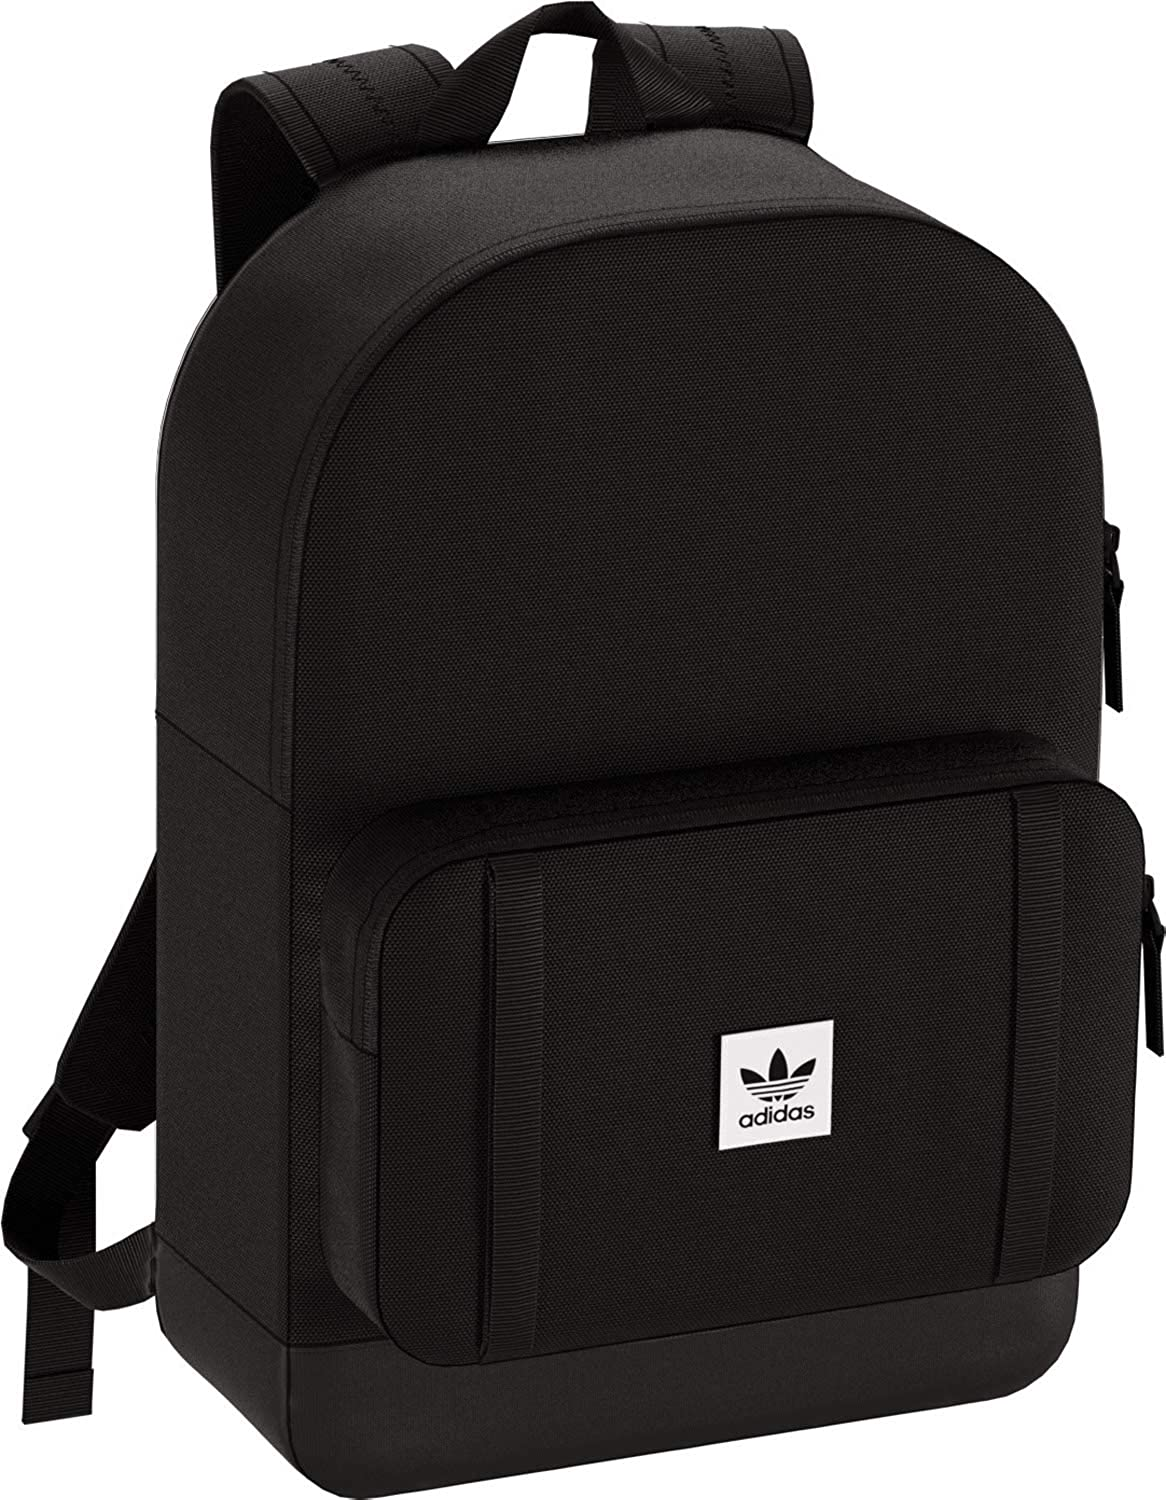 Adidas Adidas Adidas Unisex Classic Rucksack 17x30x44 centimeters B07KR9CB4L Daypacks Bestseller a8aa09